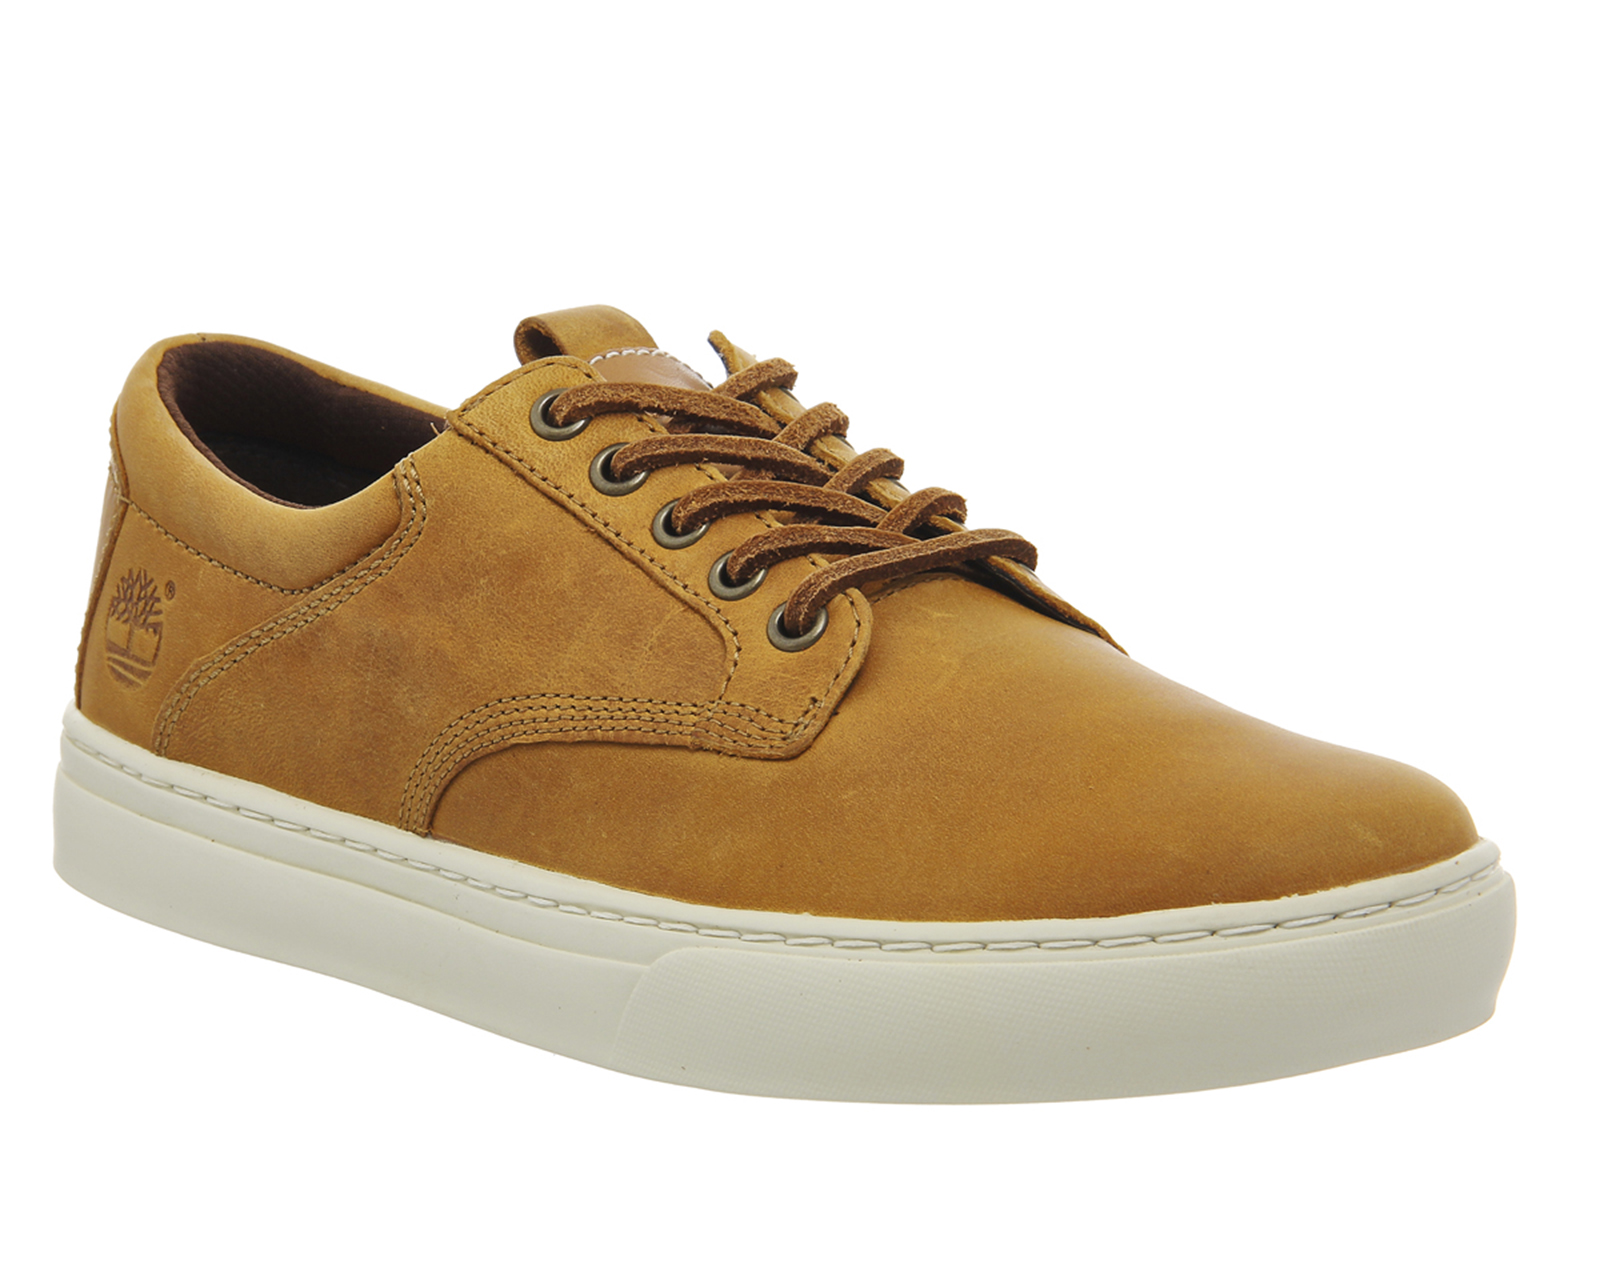 Timberland Casual Shoes Adventure 2.0 Cupsole Oxford Wheat Leather